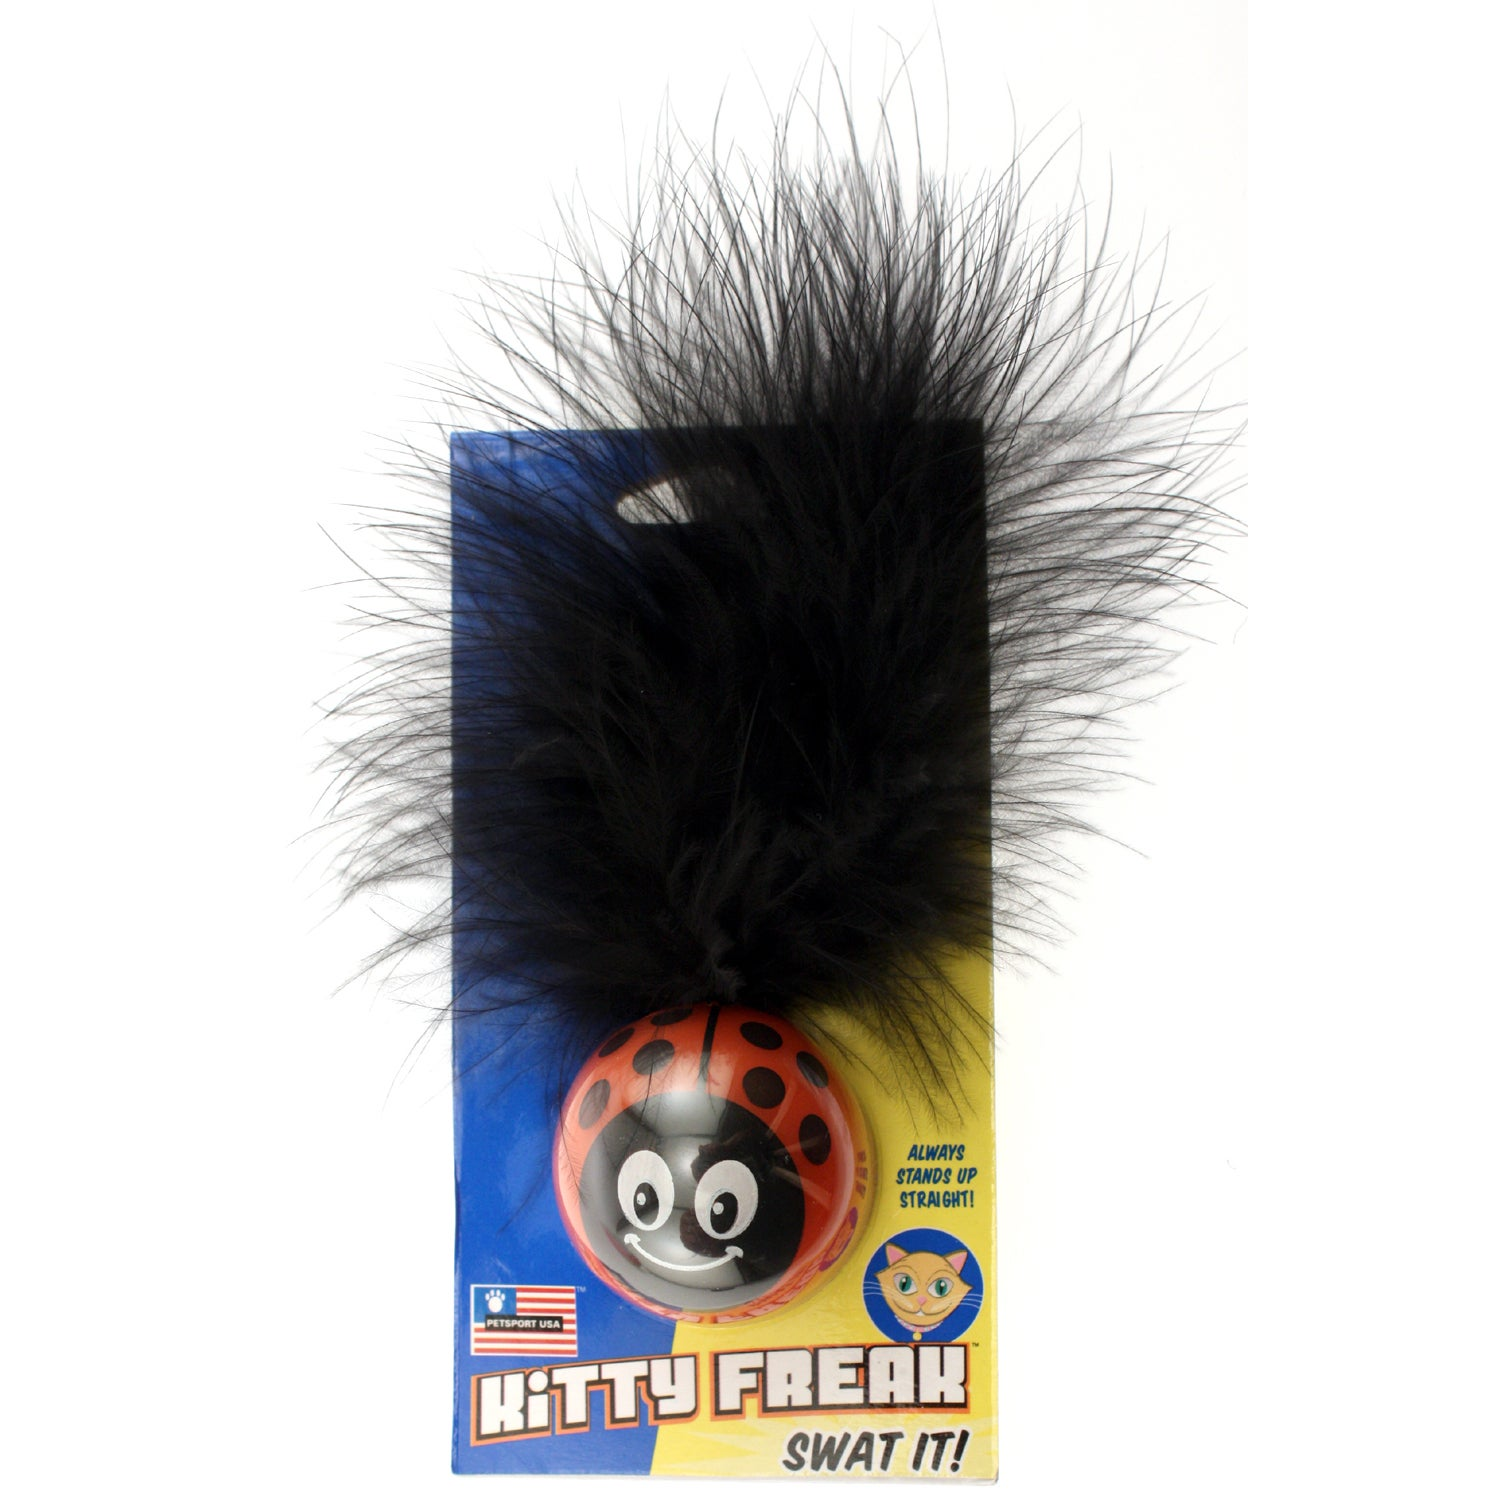 Petsport USA Kitty Freak Ladybug Cat Toy (Kitty Freak Lad...